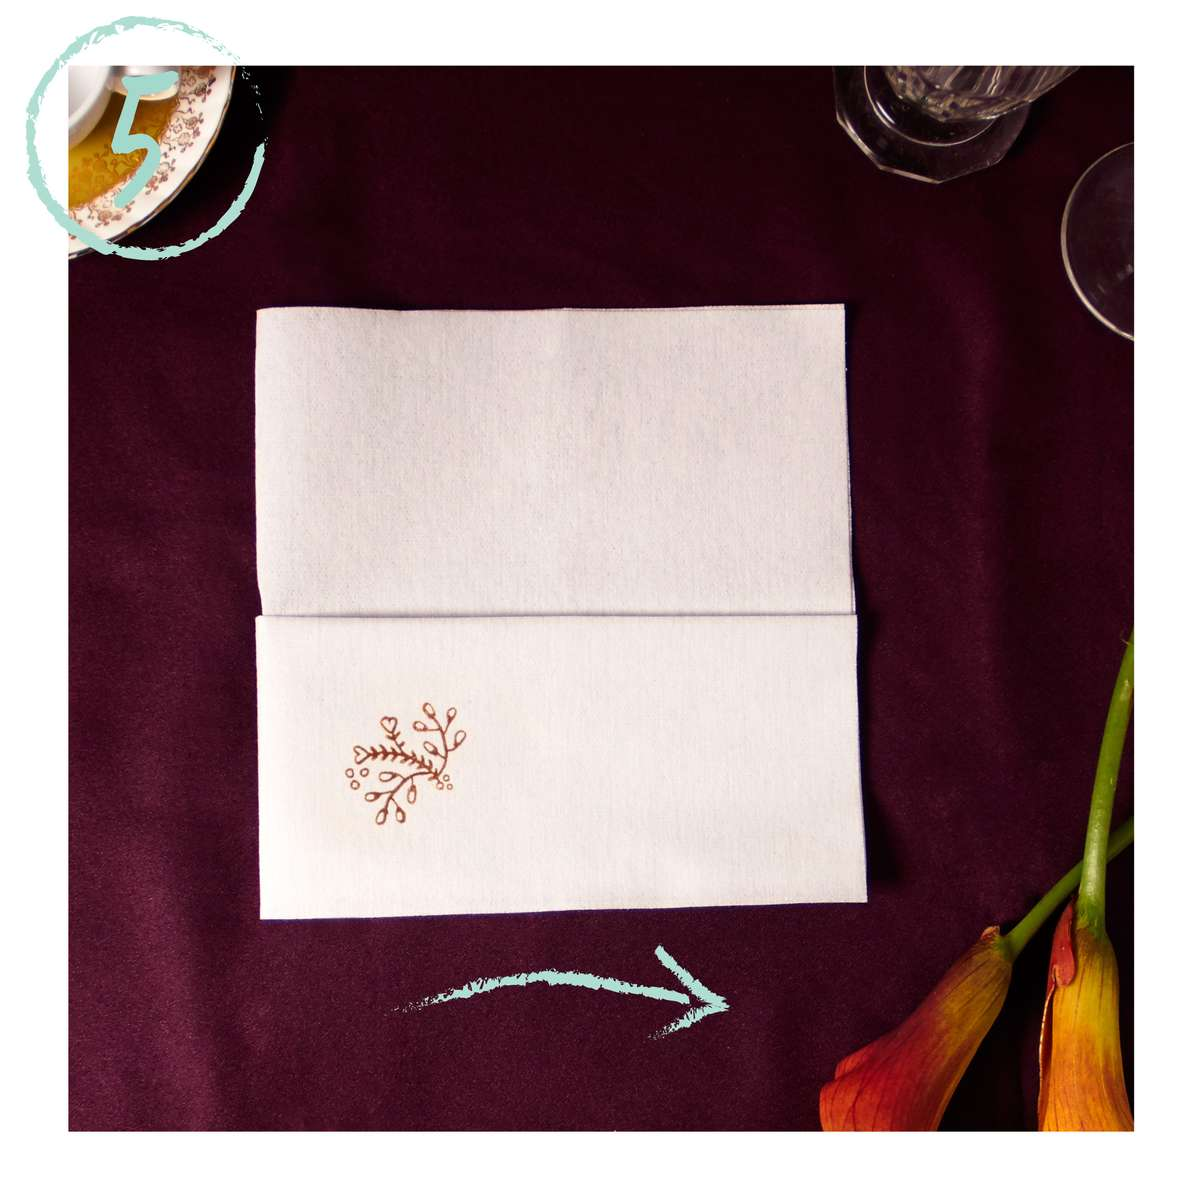 DIY Pocket napkin fold with a personalized napkin